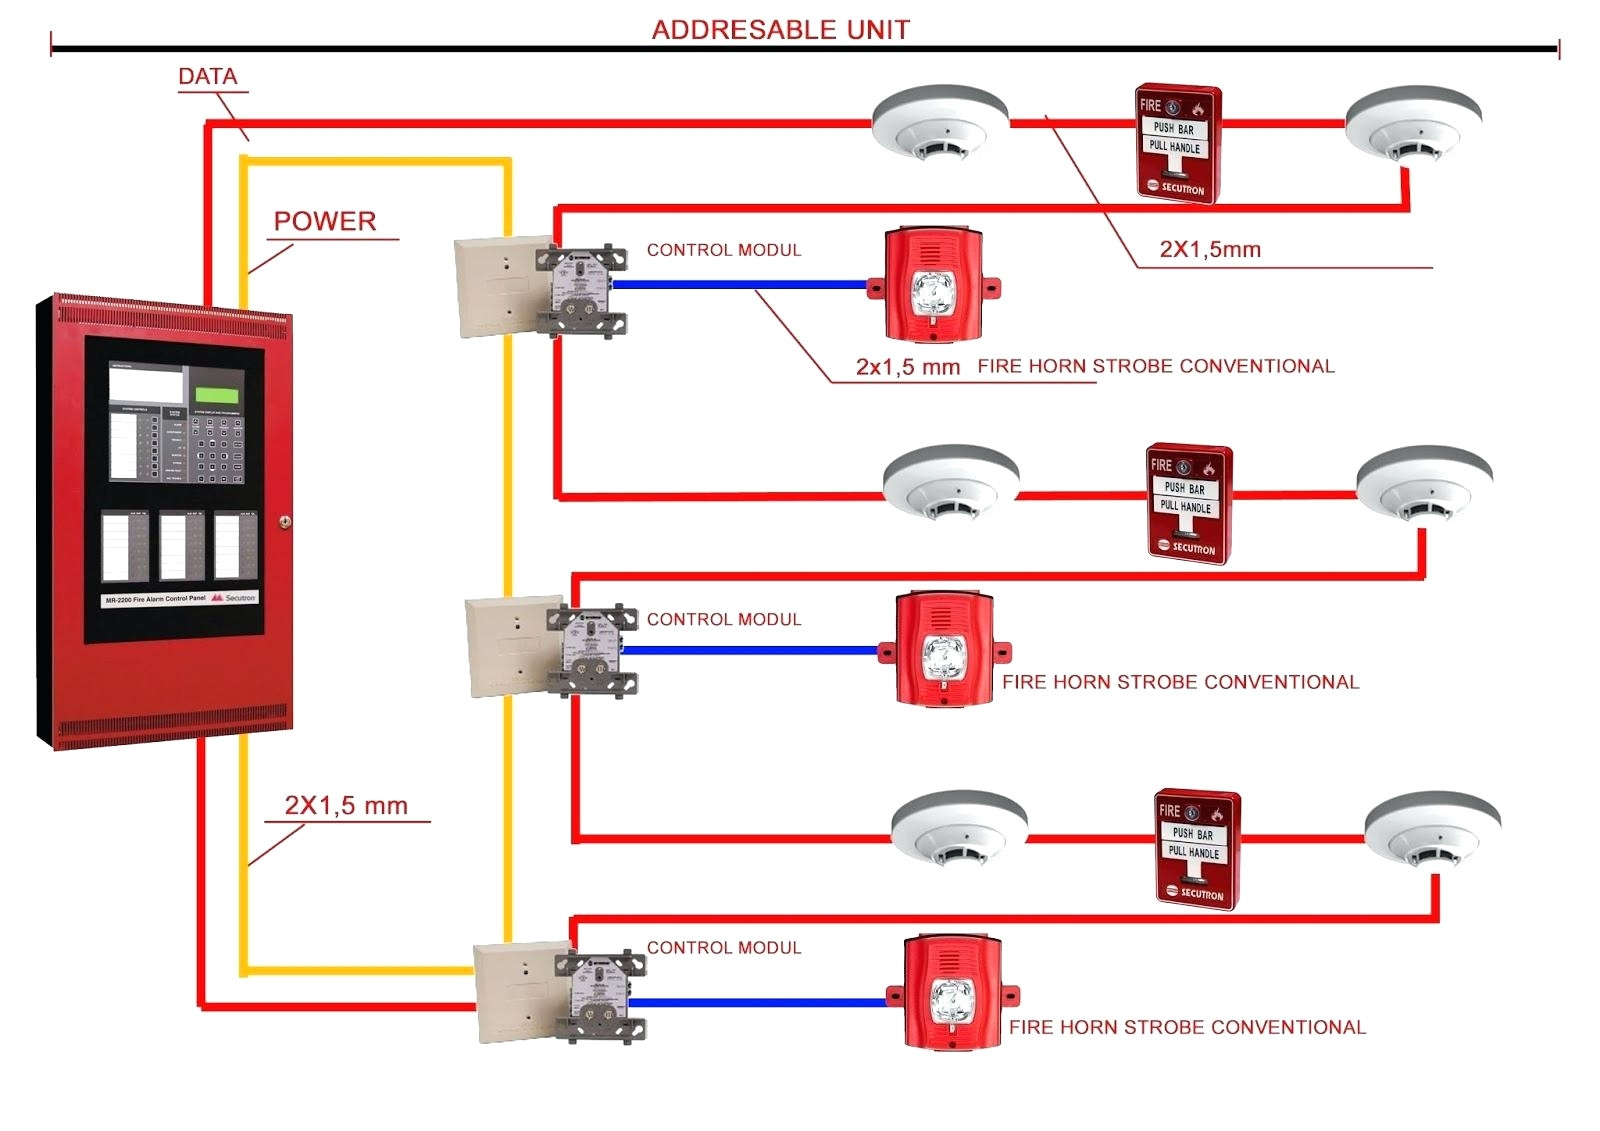 Fire Alarm Strobe Wiring Diagram | Wiring Diagram - Fire Alarm Horn Strobe Wiring Diagram